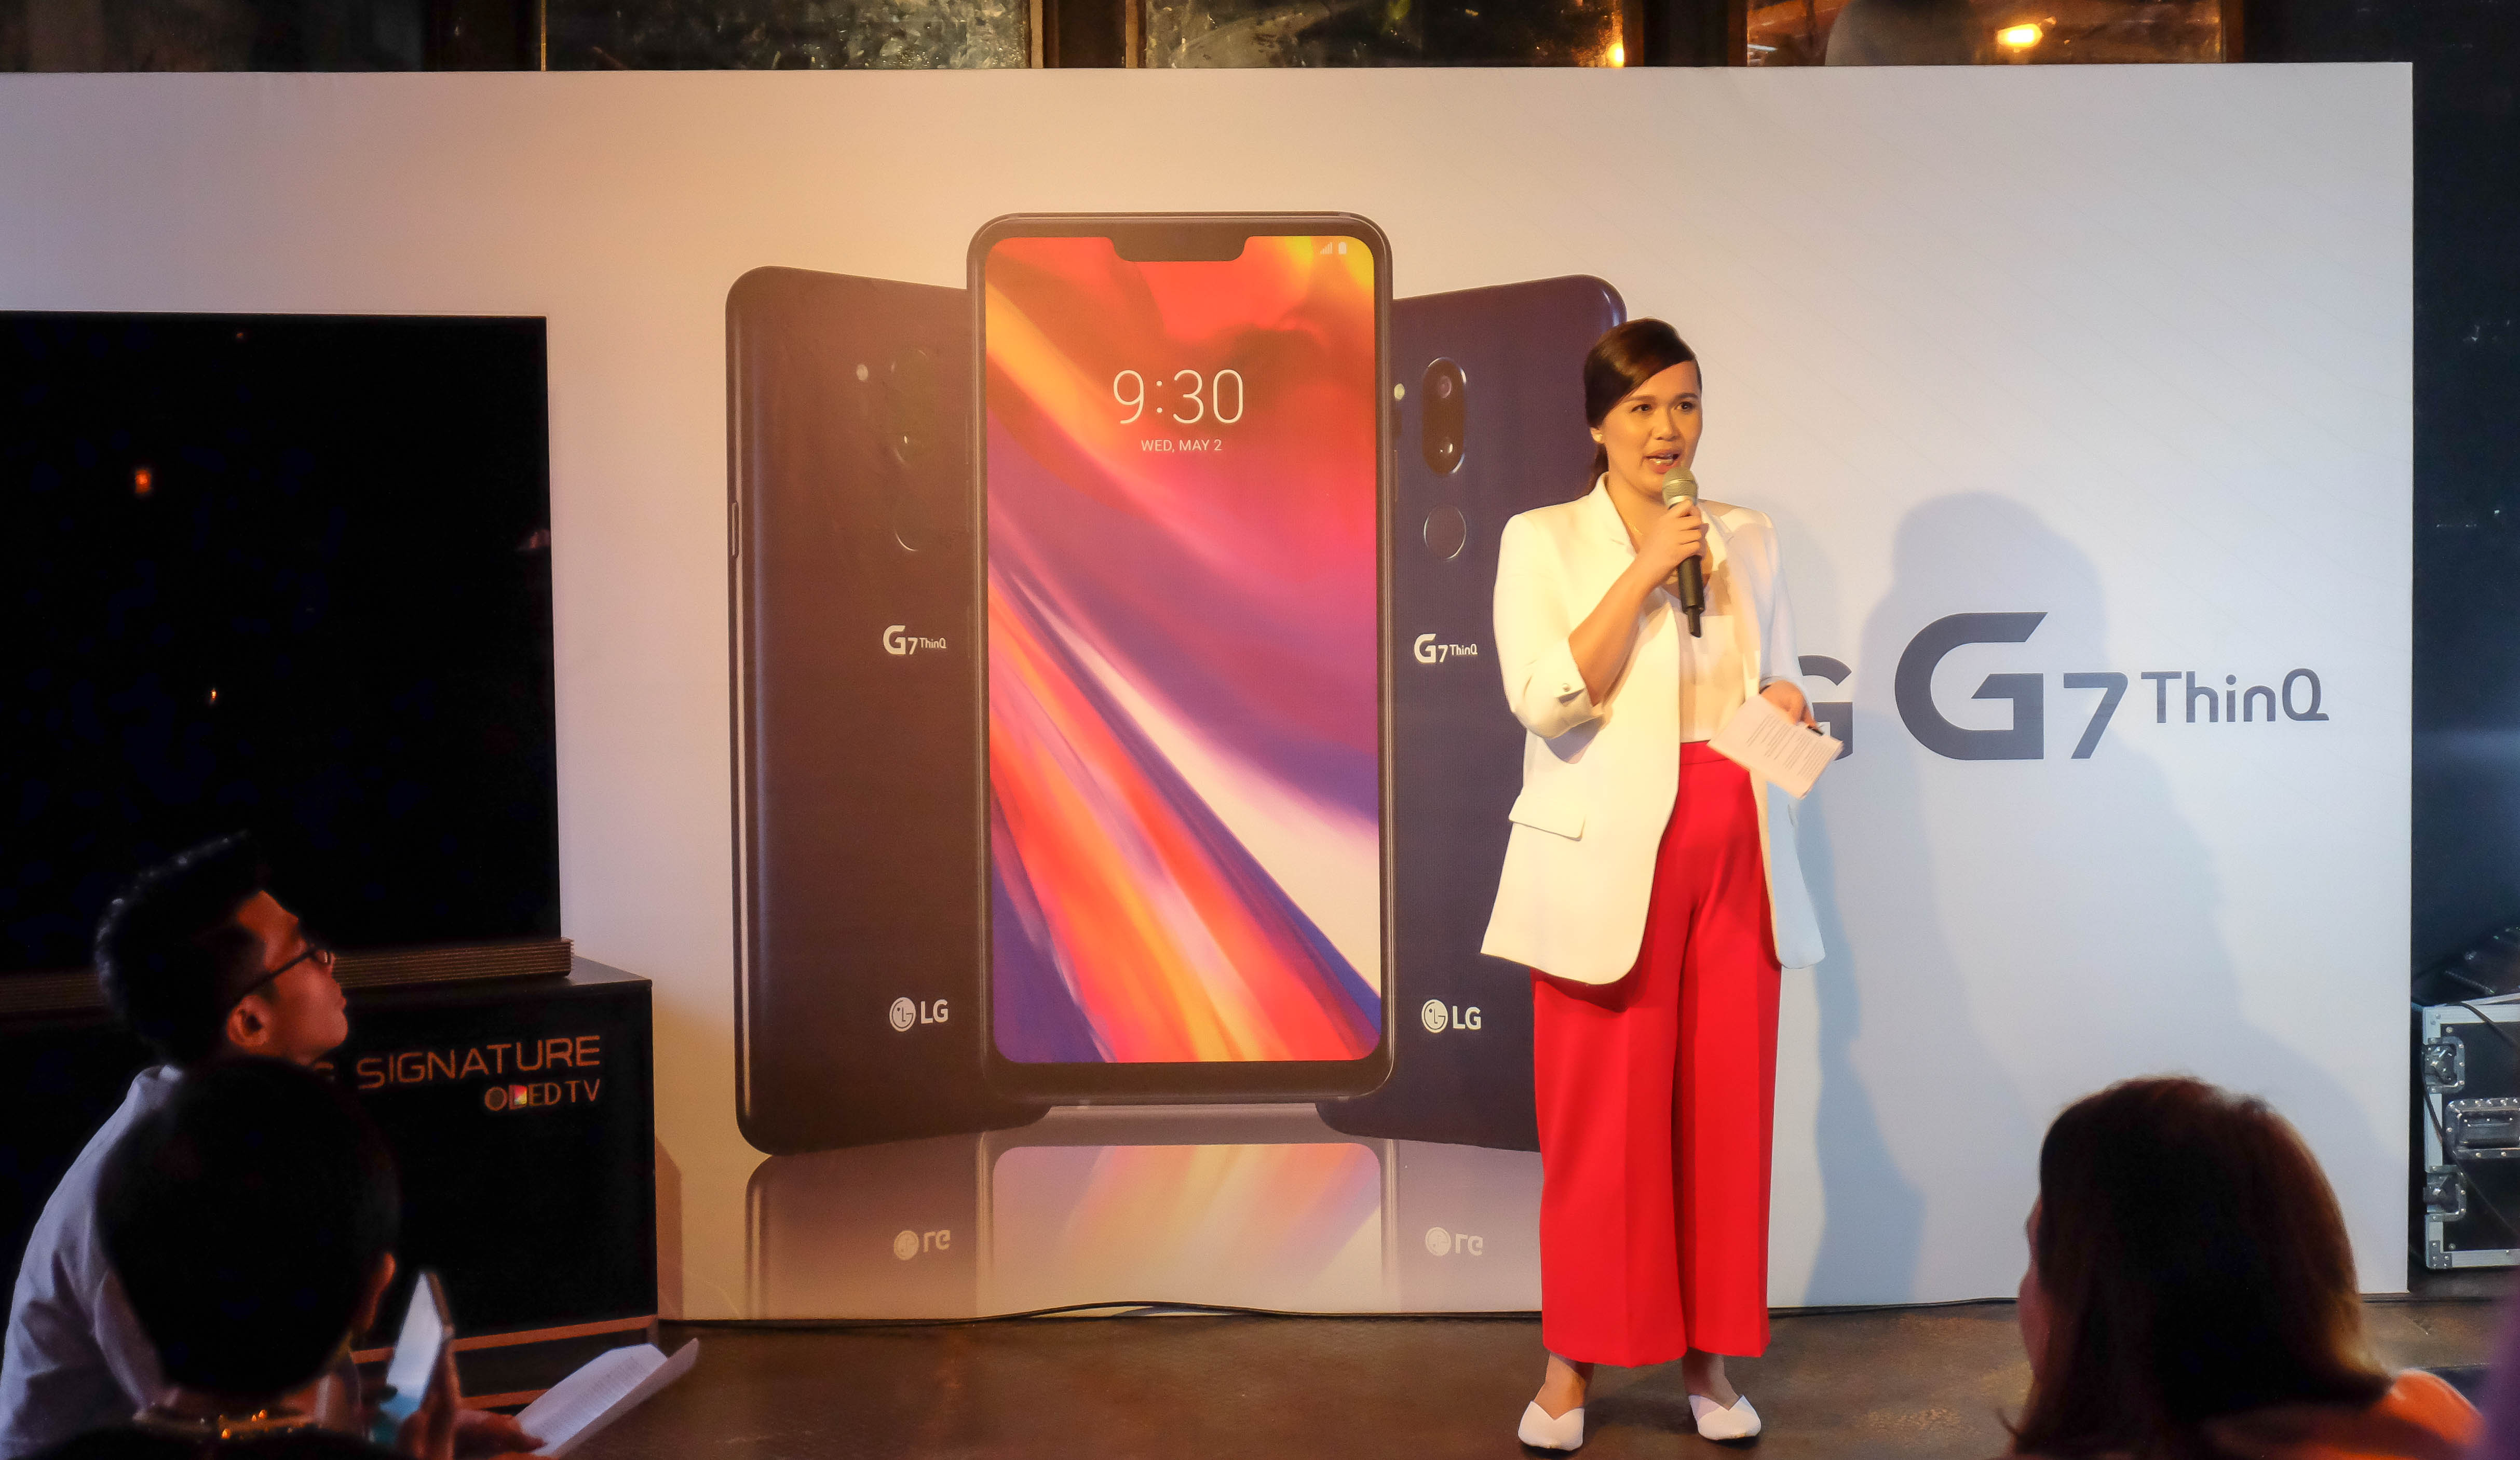 LG G7 ThinQ7 is Now Officially Available in the Philippines